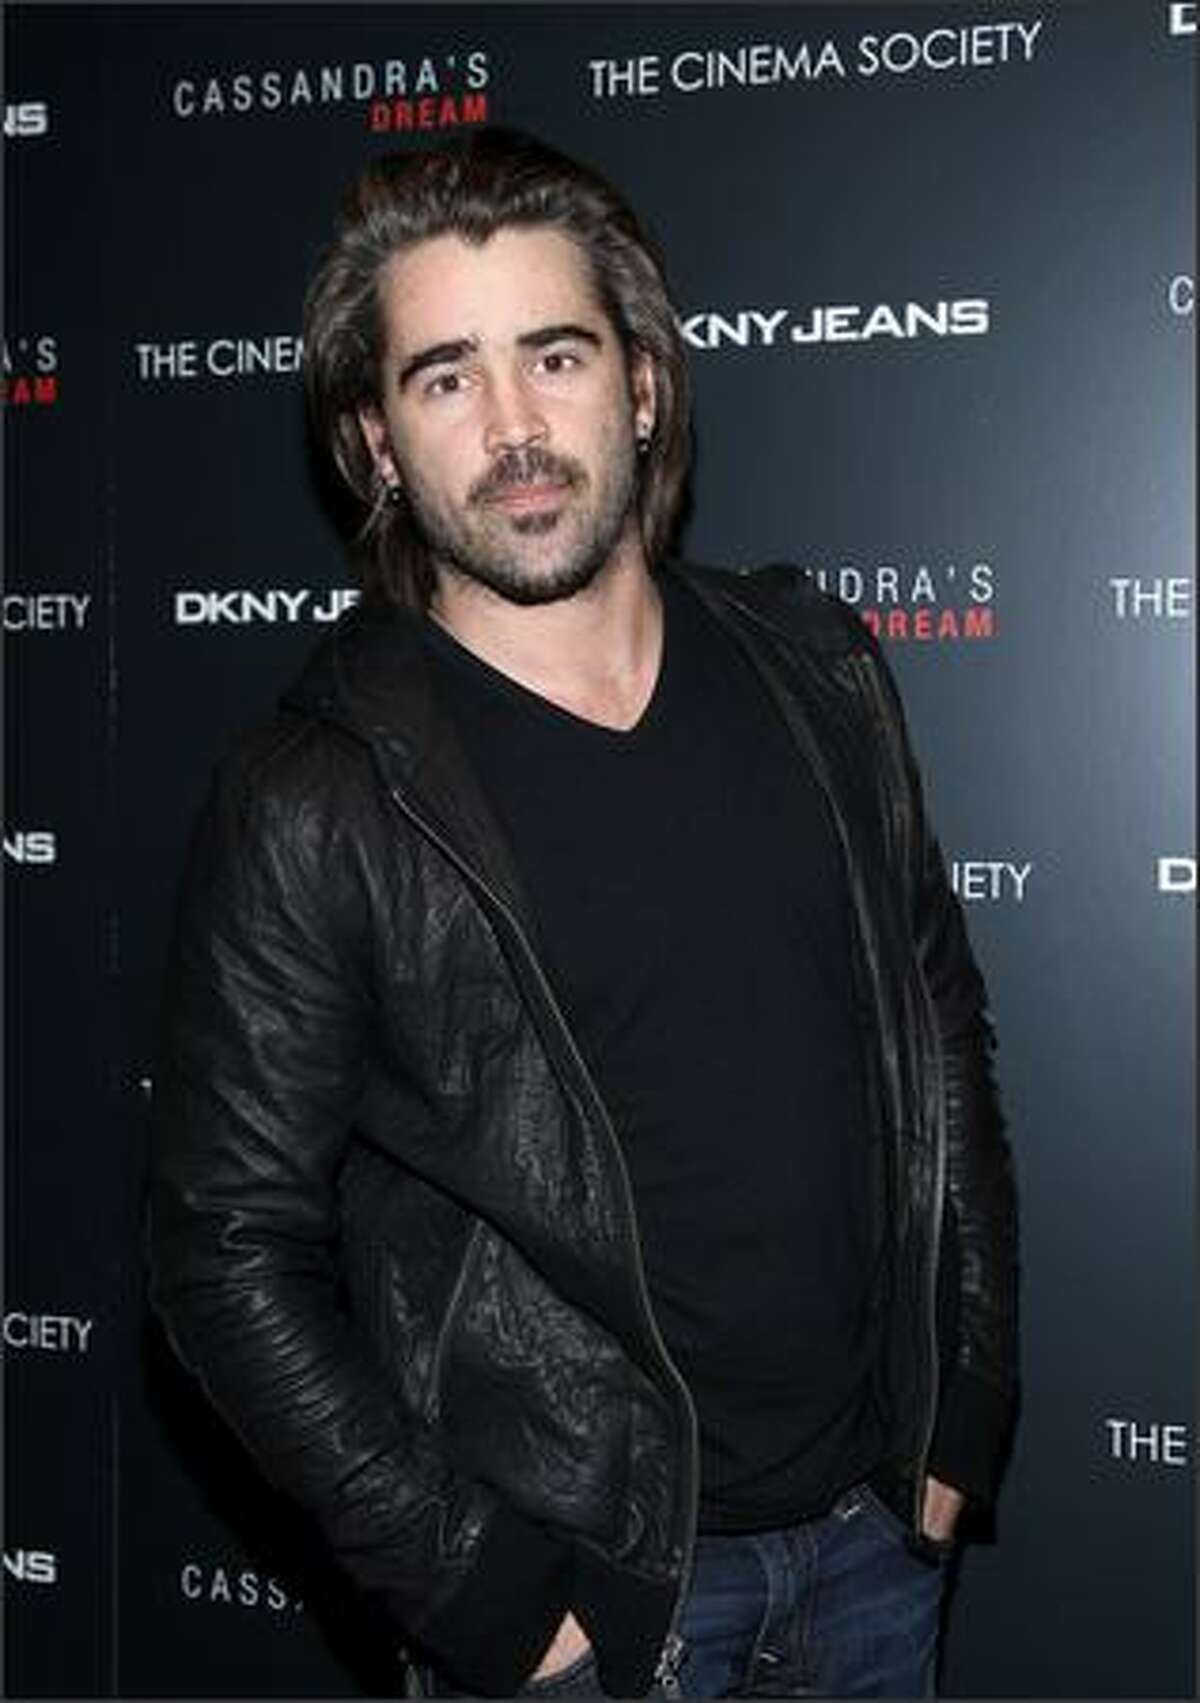 Actor Colin Farrell attends the New York screening of